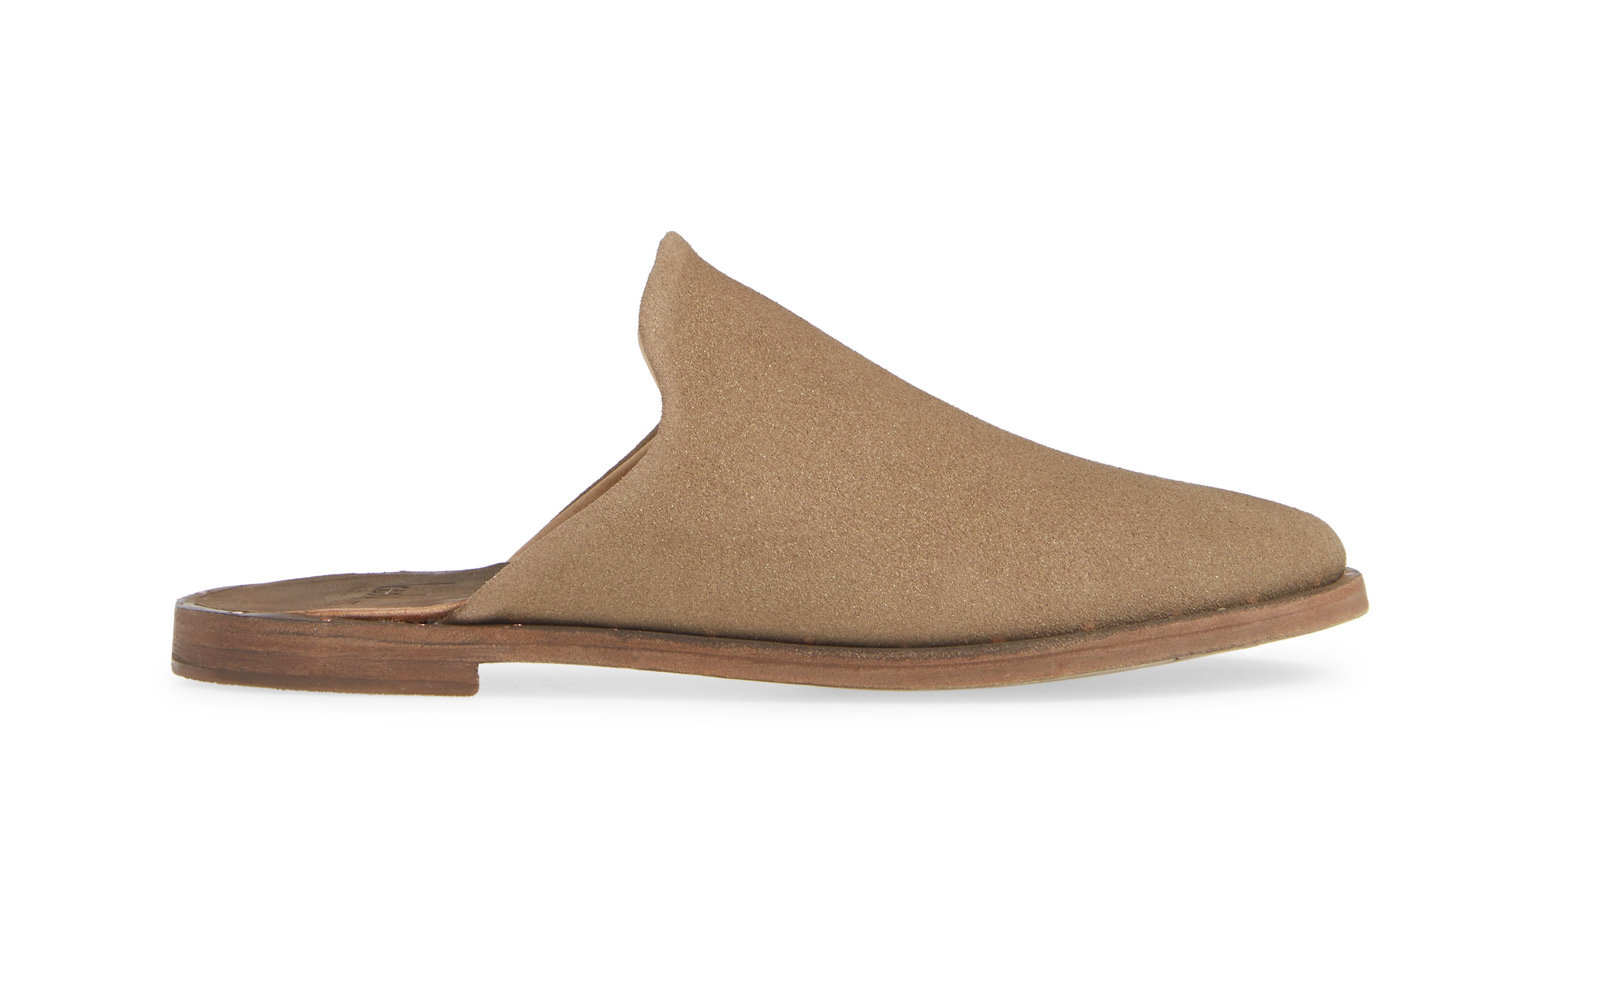 d3d0c7af6f8d The Most Comfortable Arch Support Shoes for Women